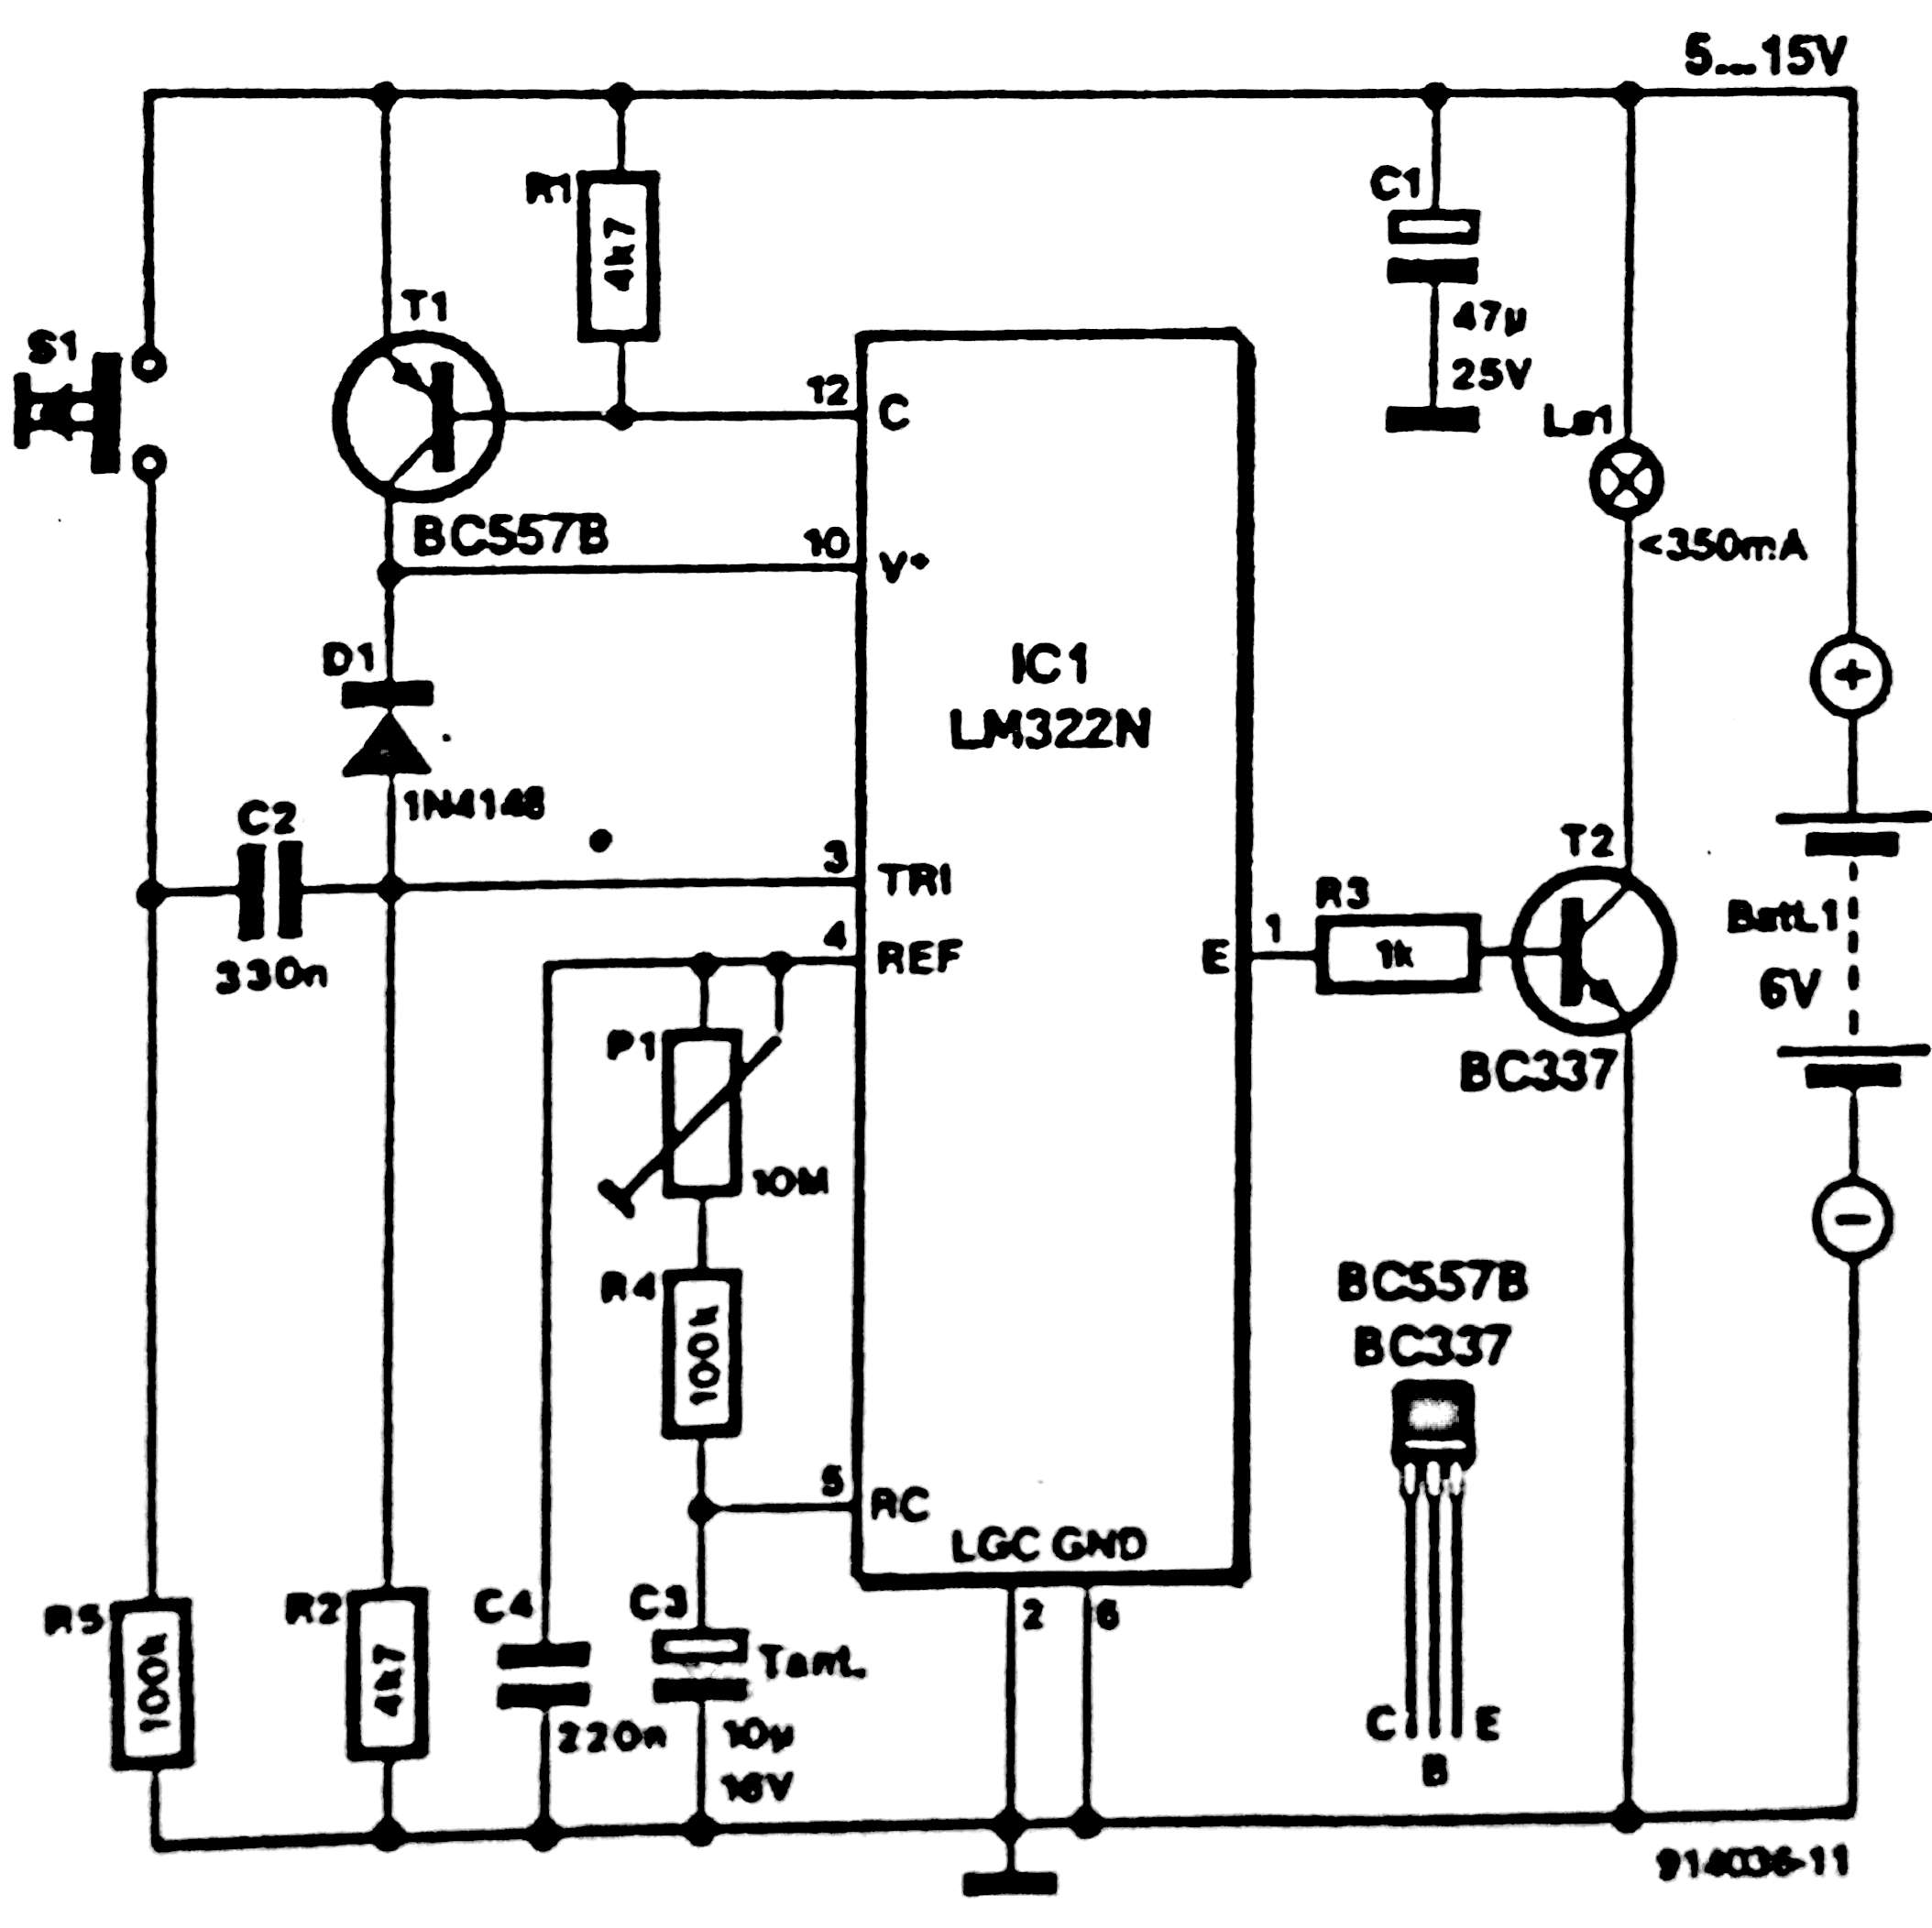 Circuitdiagram Automotivecircuit Stablefunctiongeneratorcircuit Auto Power Off For Audio Equipment Circuit Diagram